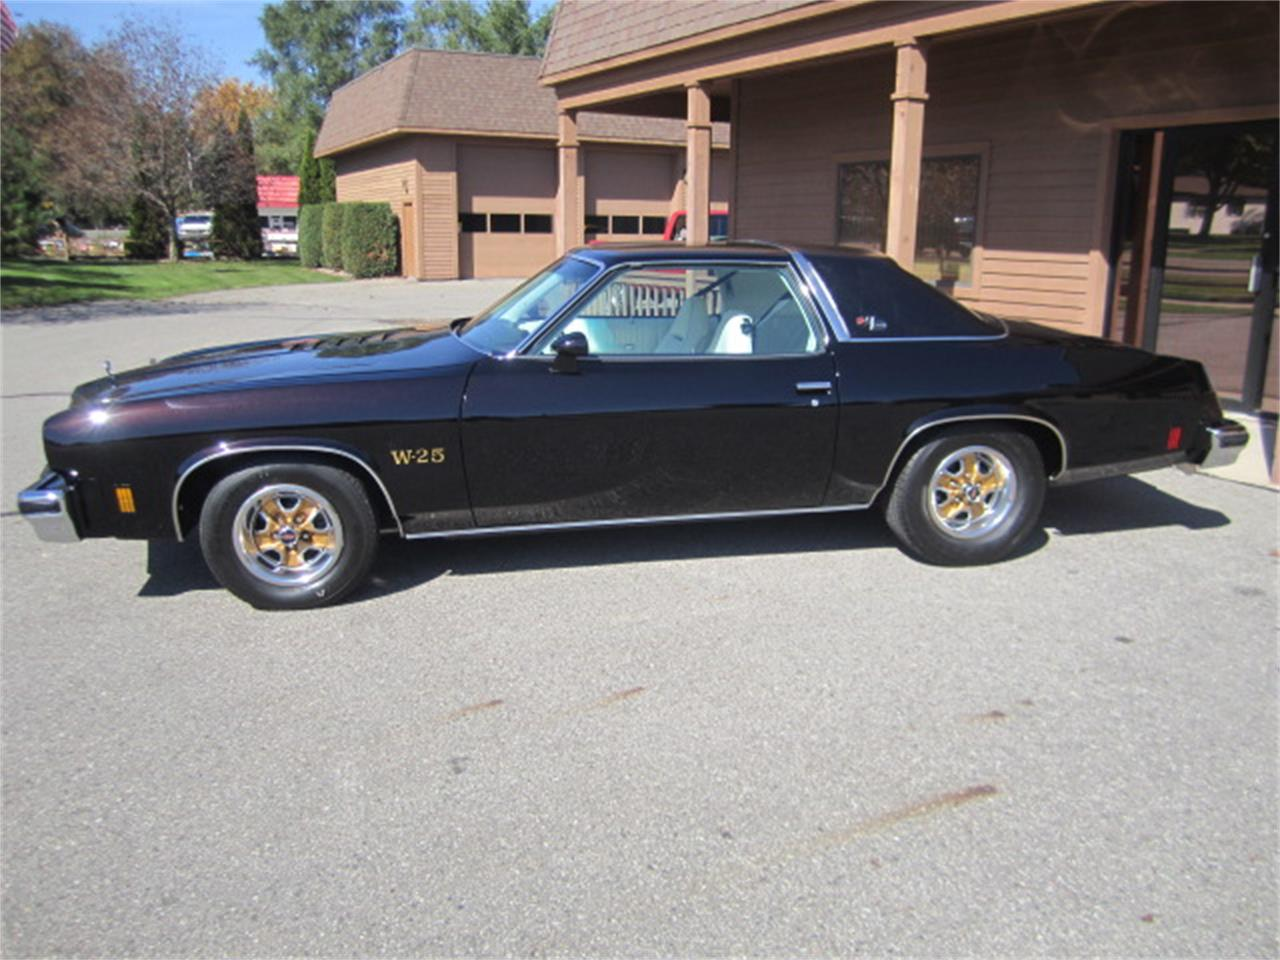 Large Picture of '75 Oldsmobile Hurst located in Michigan - $19,950.00 Offered by a Private Seller - MXYR